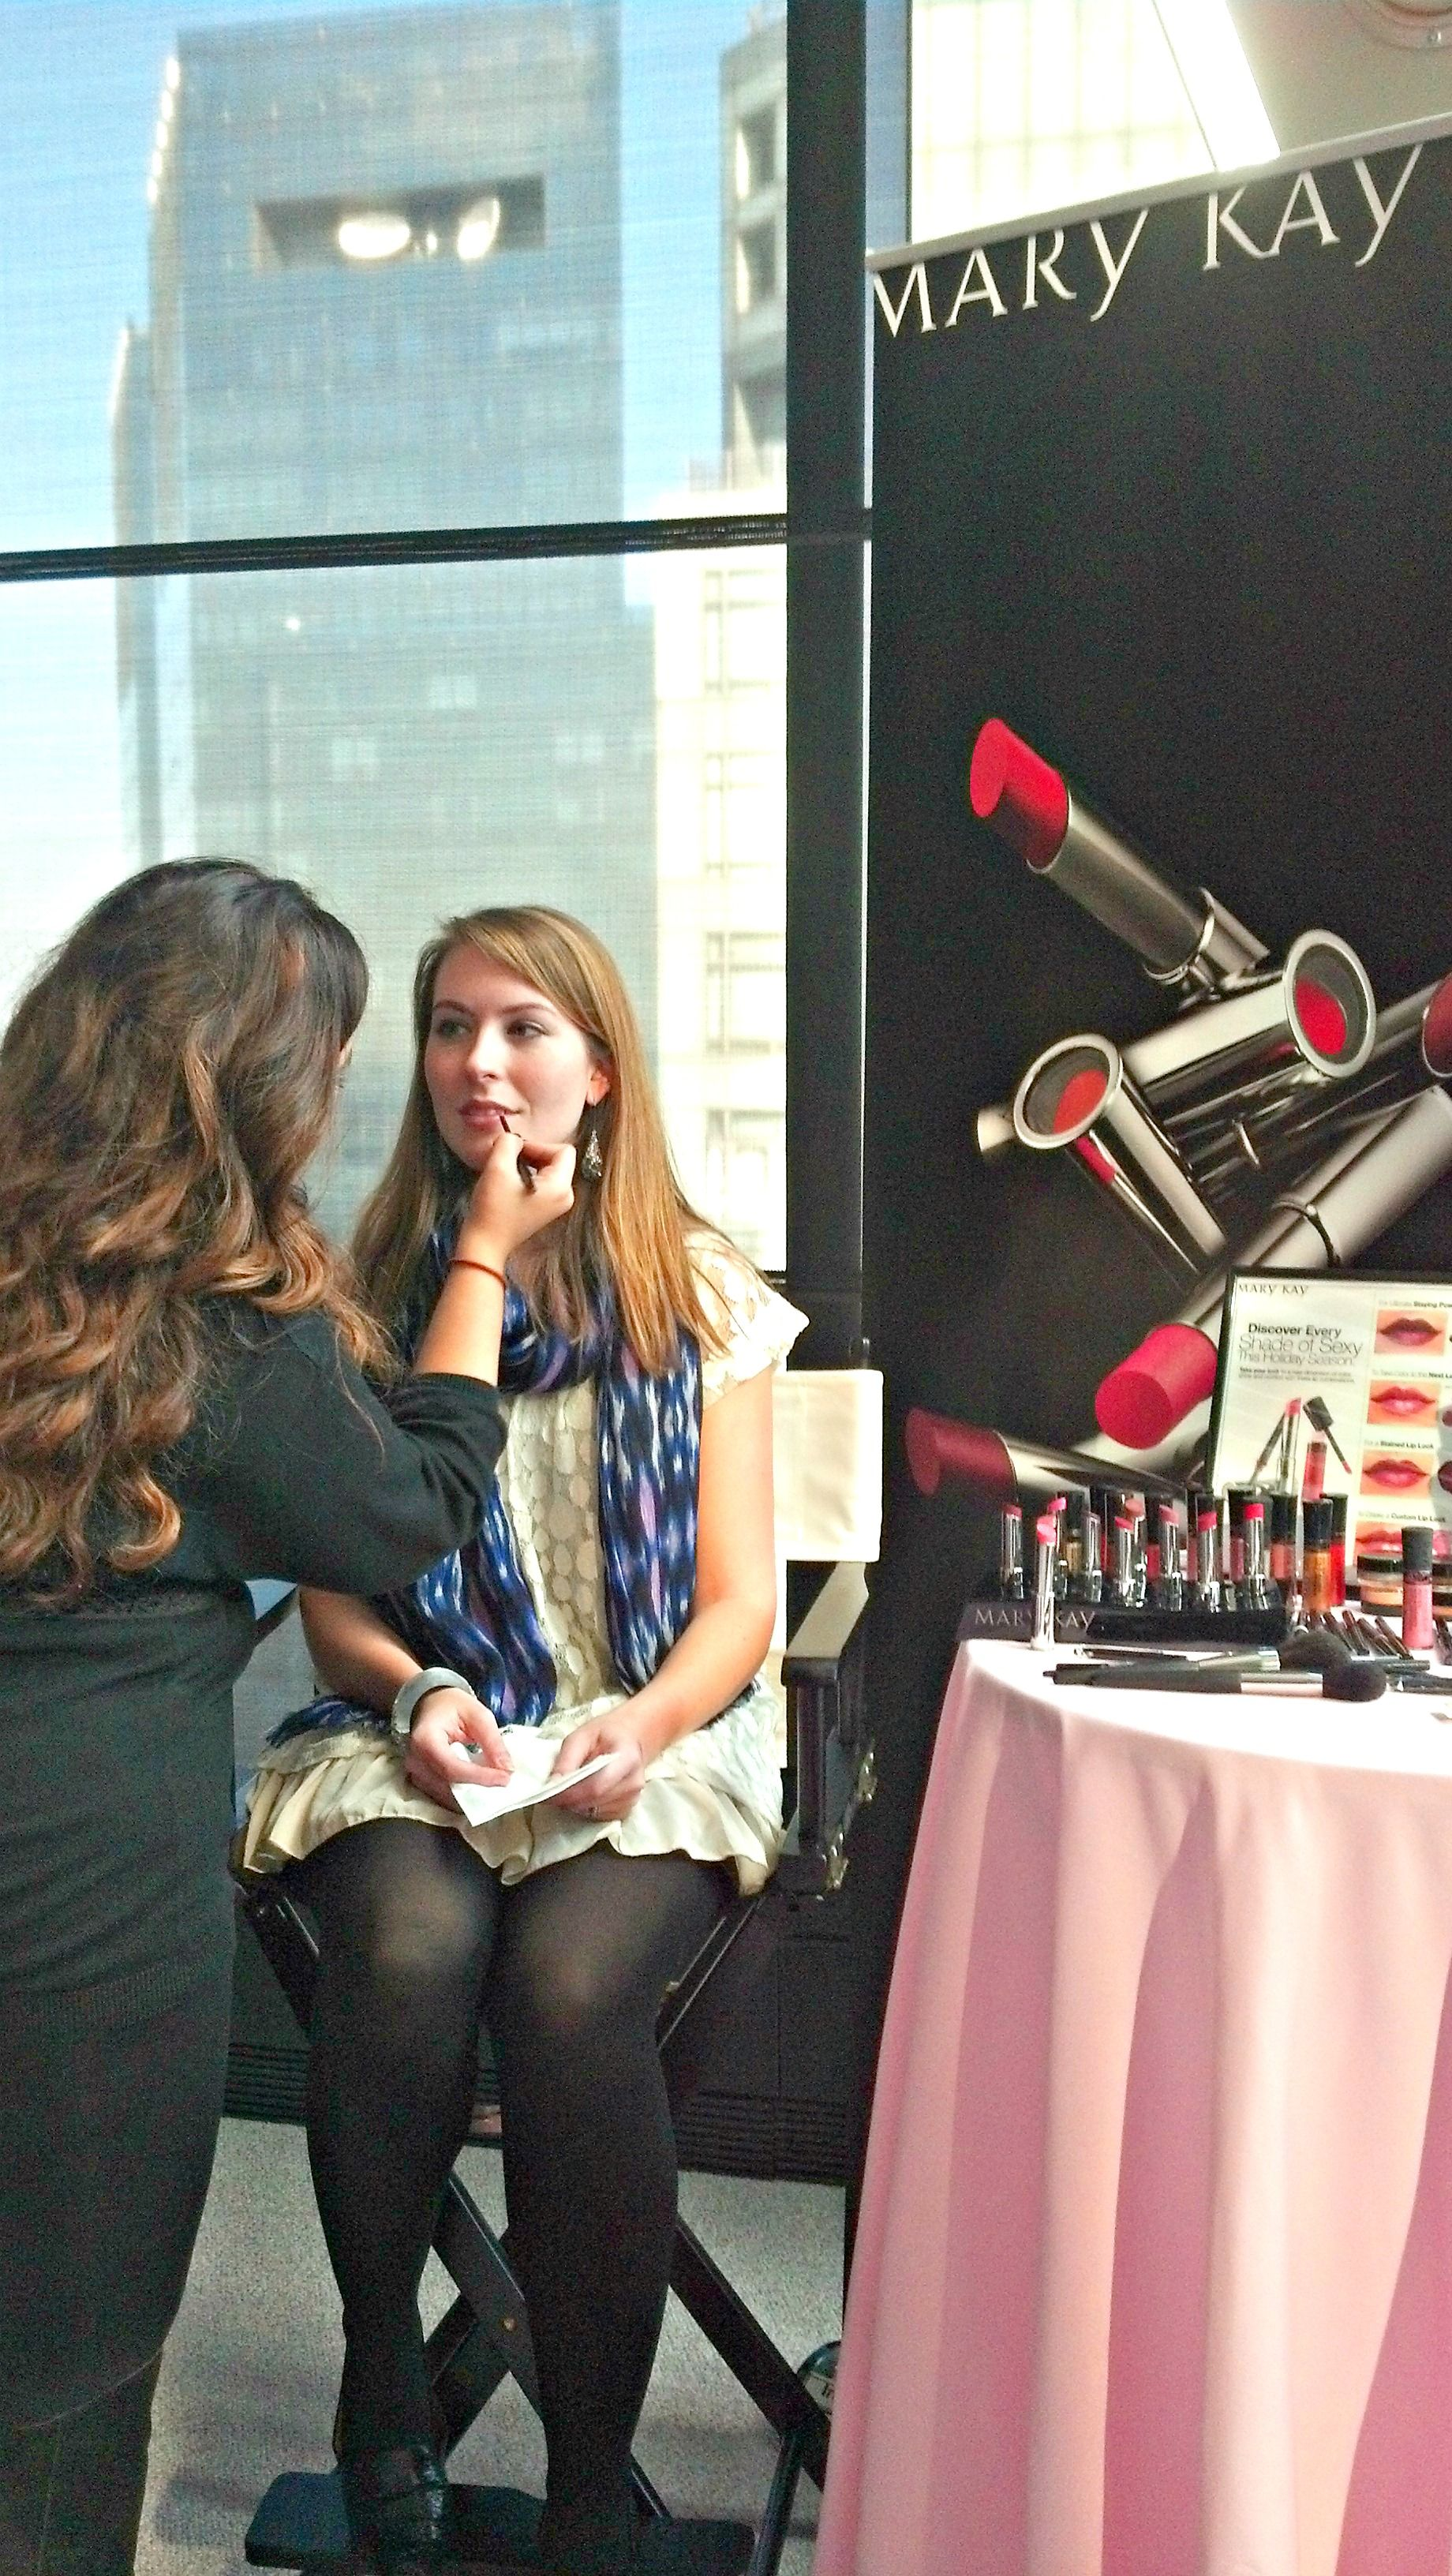 Kelly Phillips Badall Senior Editor Of Country Living Magazine At The Mary Kay True Dimensions Lipstick Launch Event